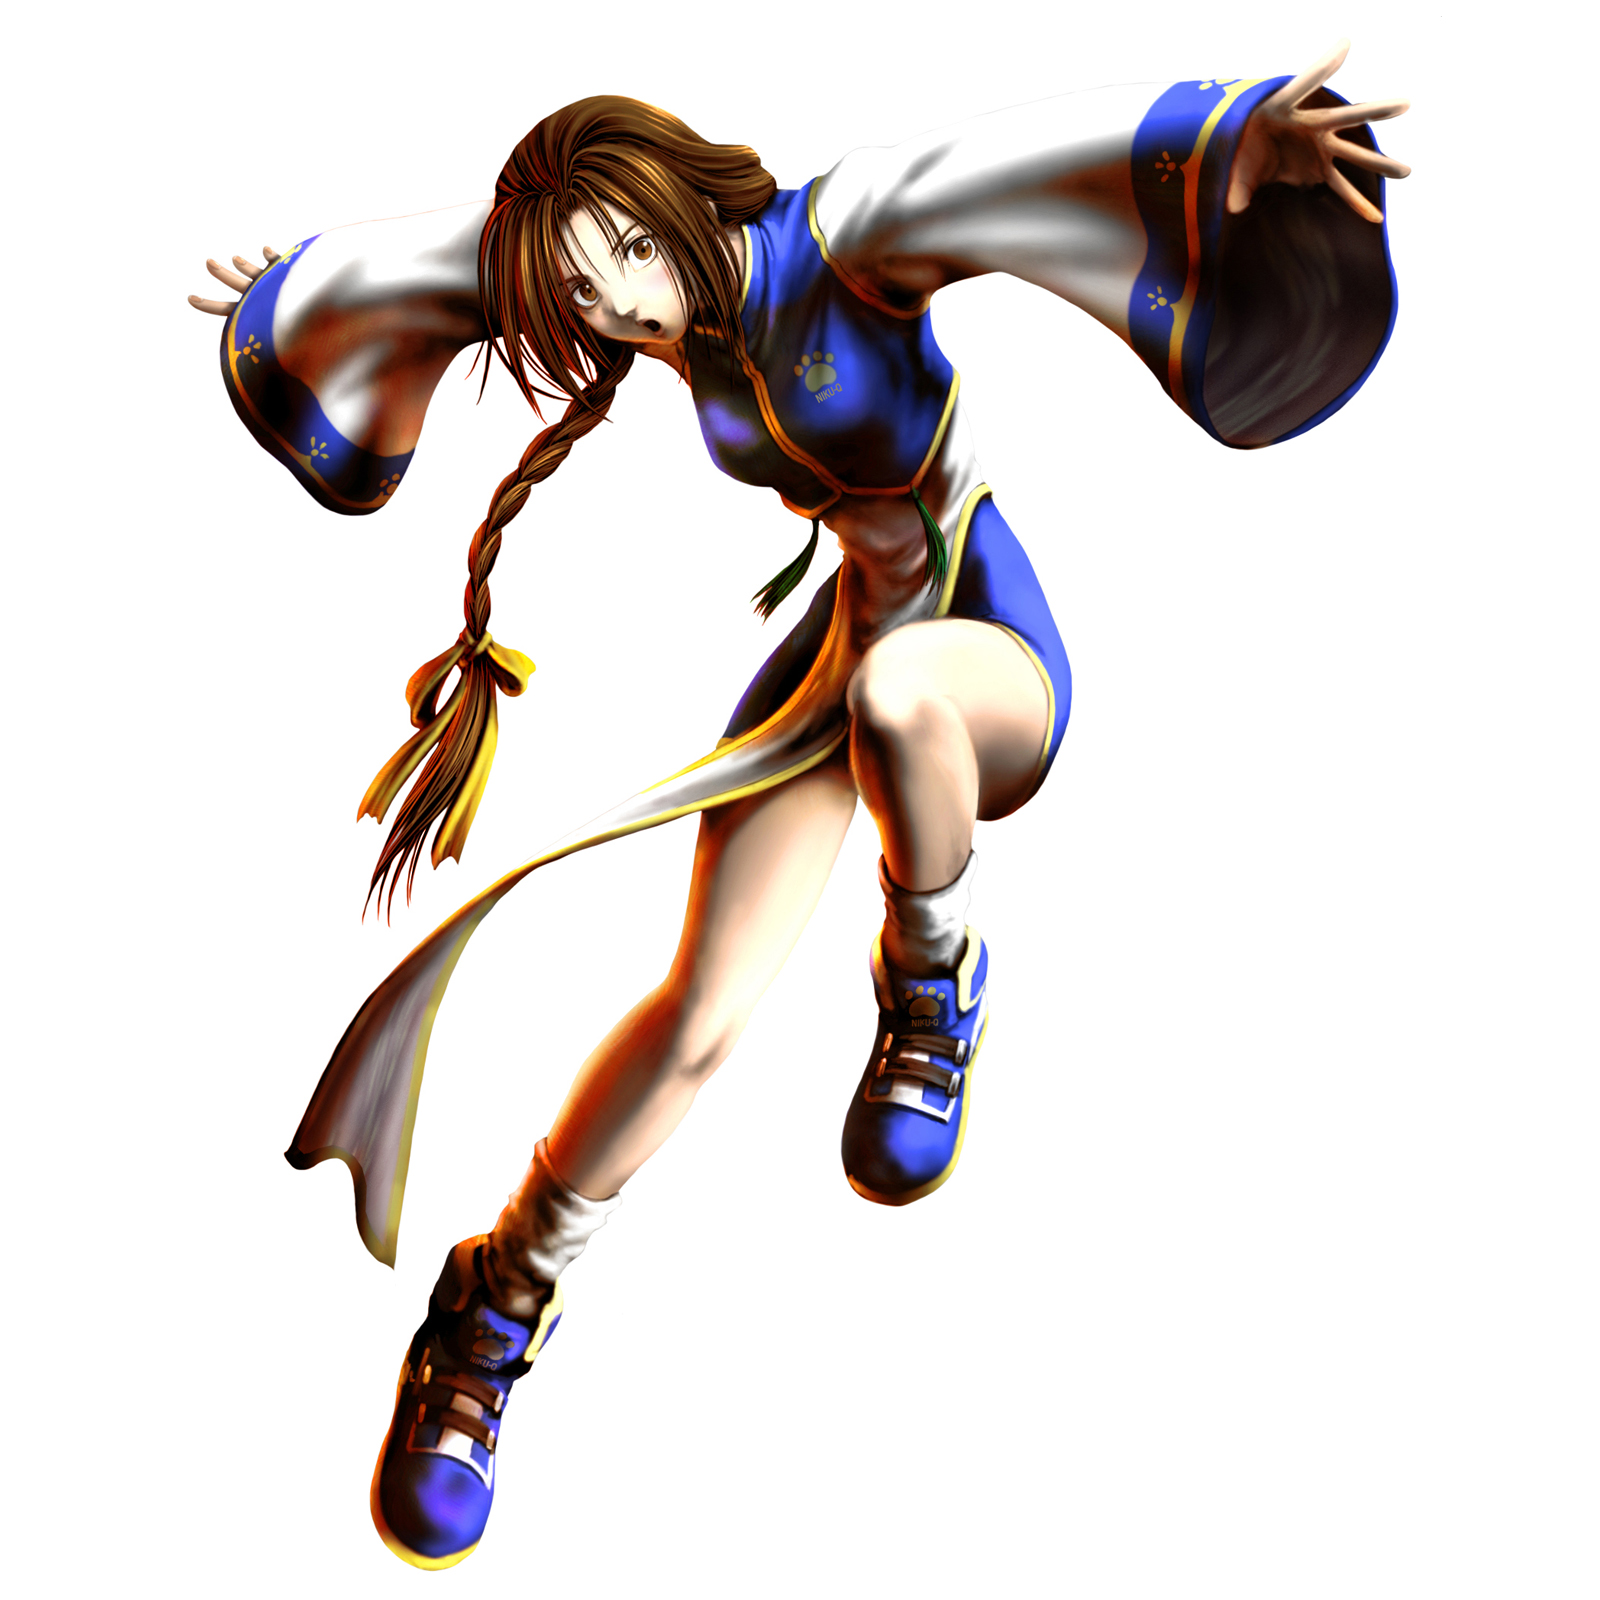 Bloody roar 4 nagi naked pics anime tubes